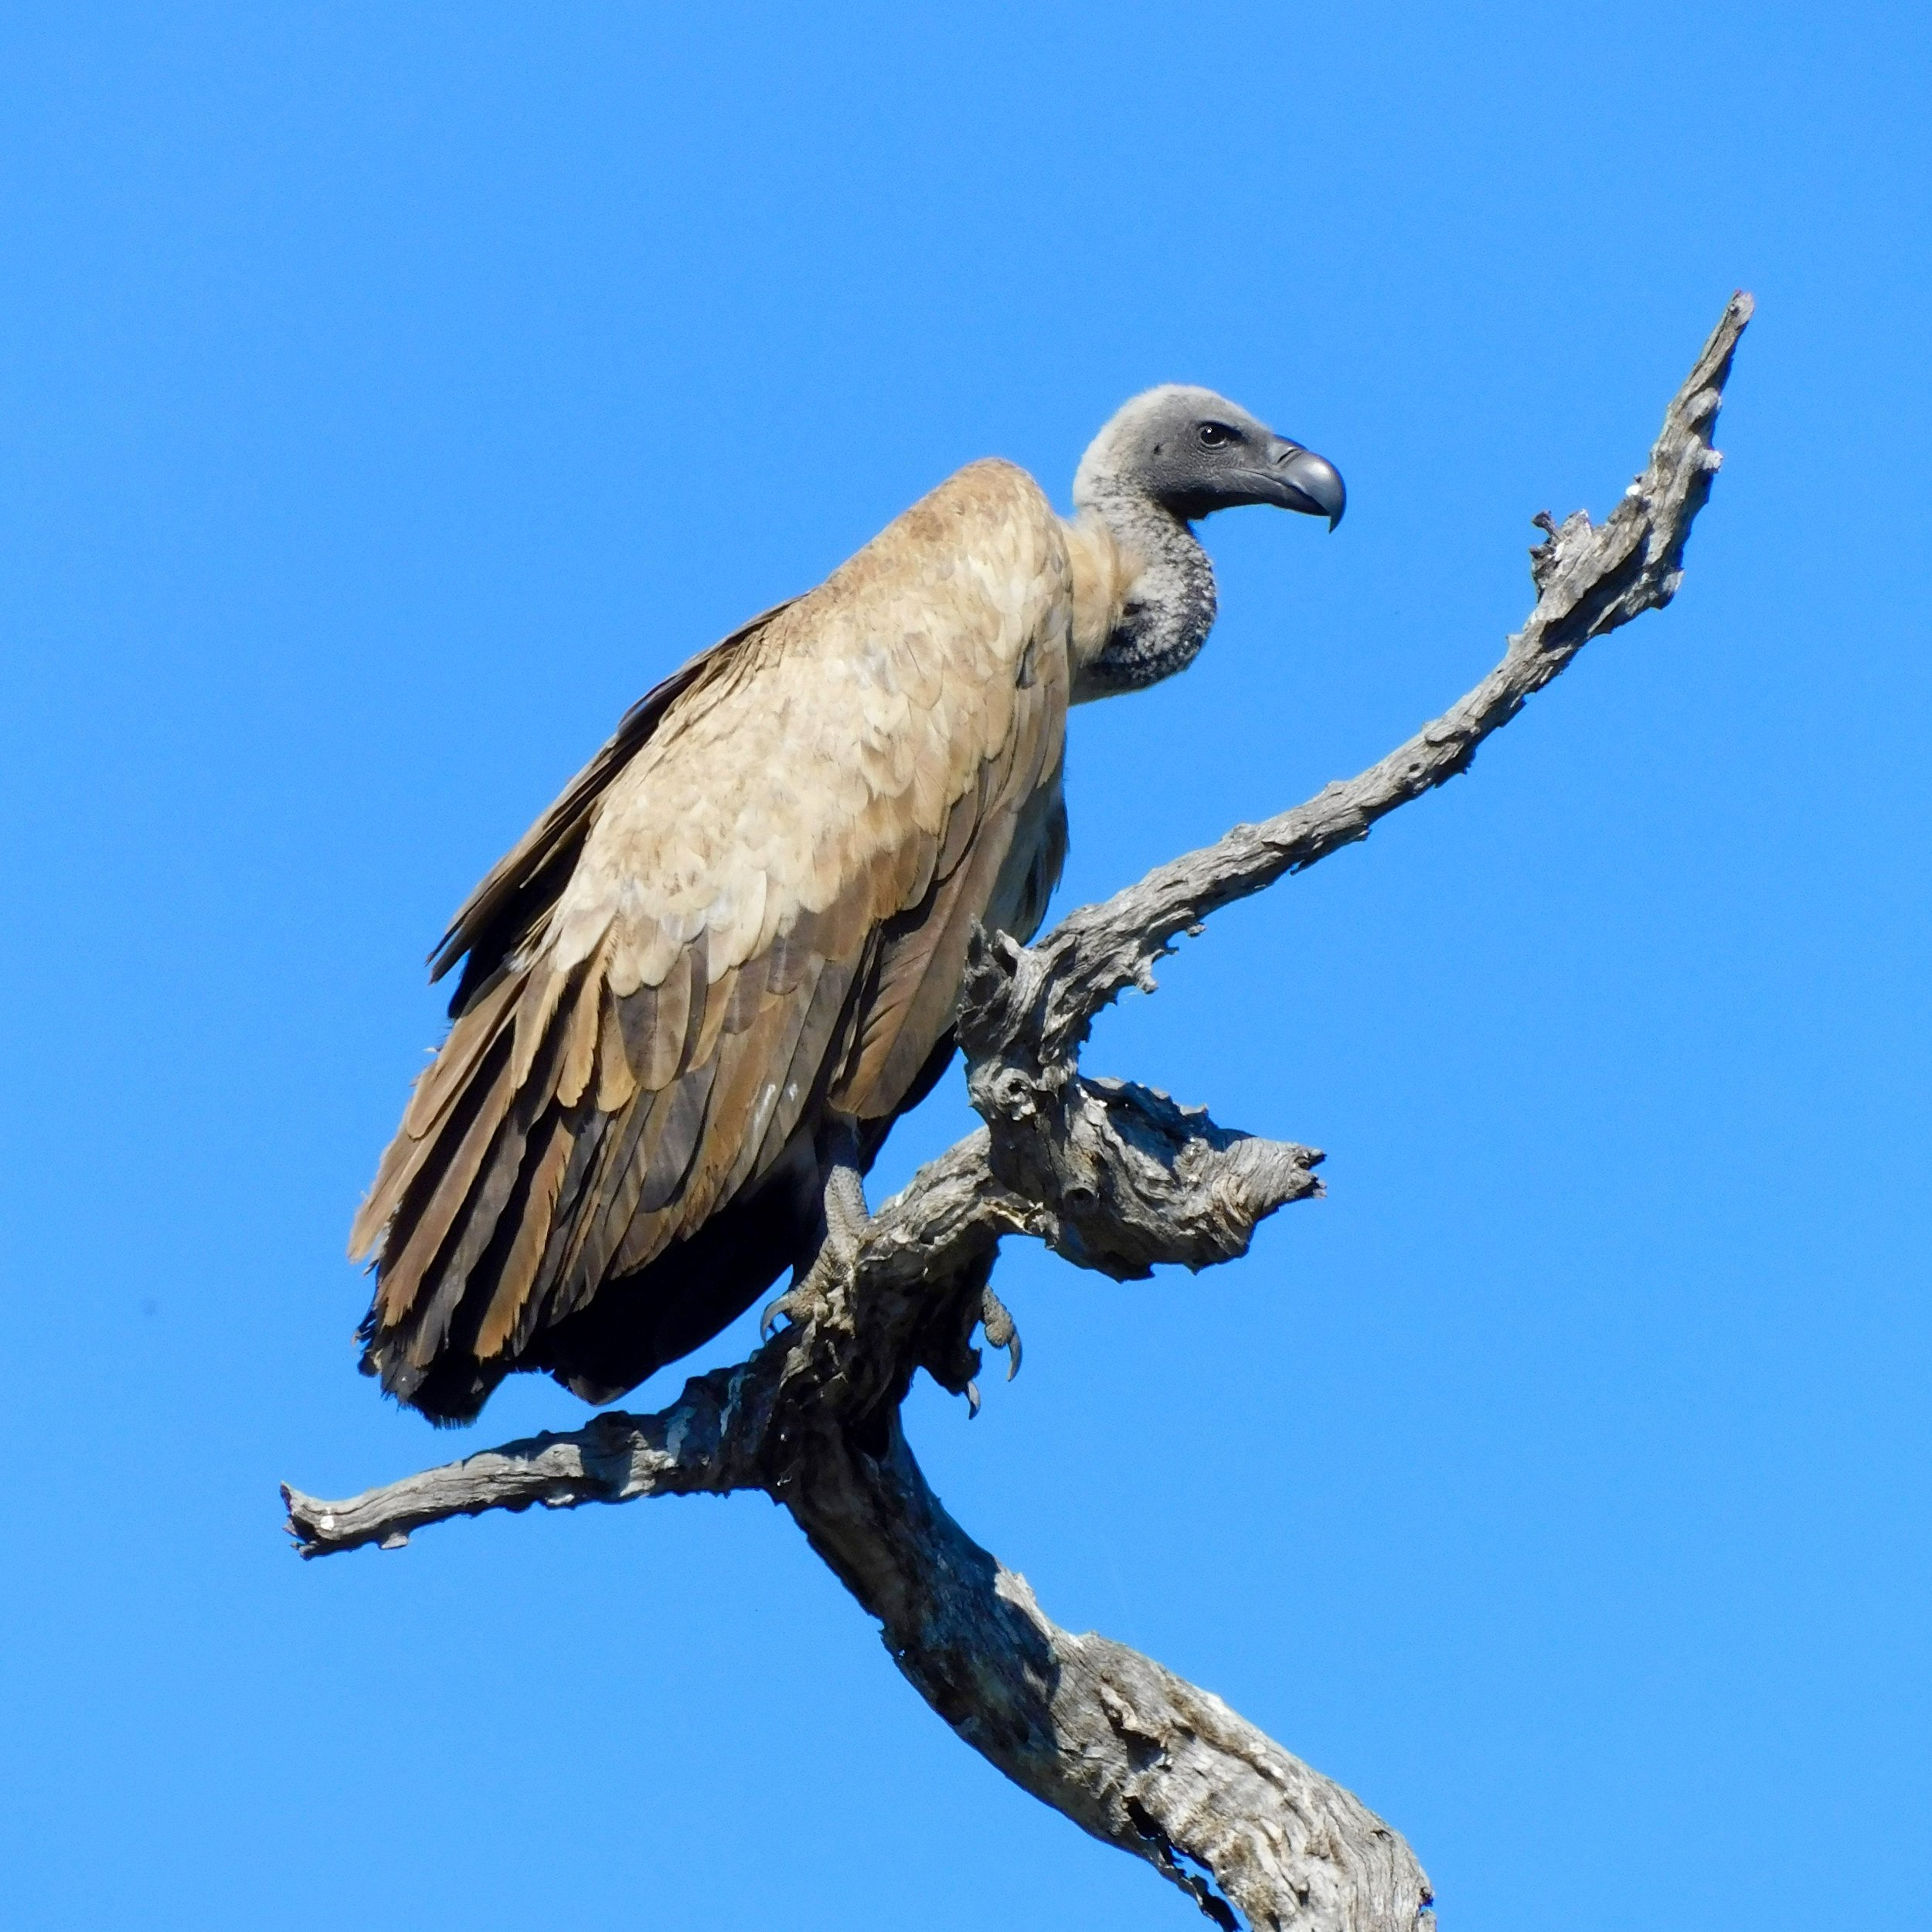 A vulture in South Africa.